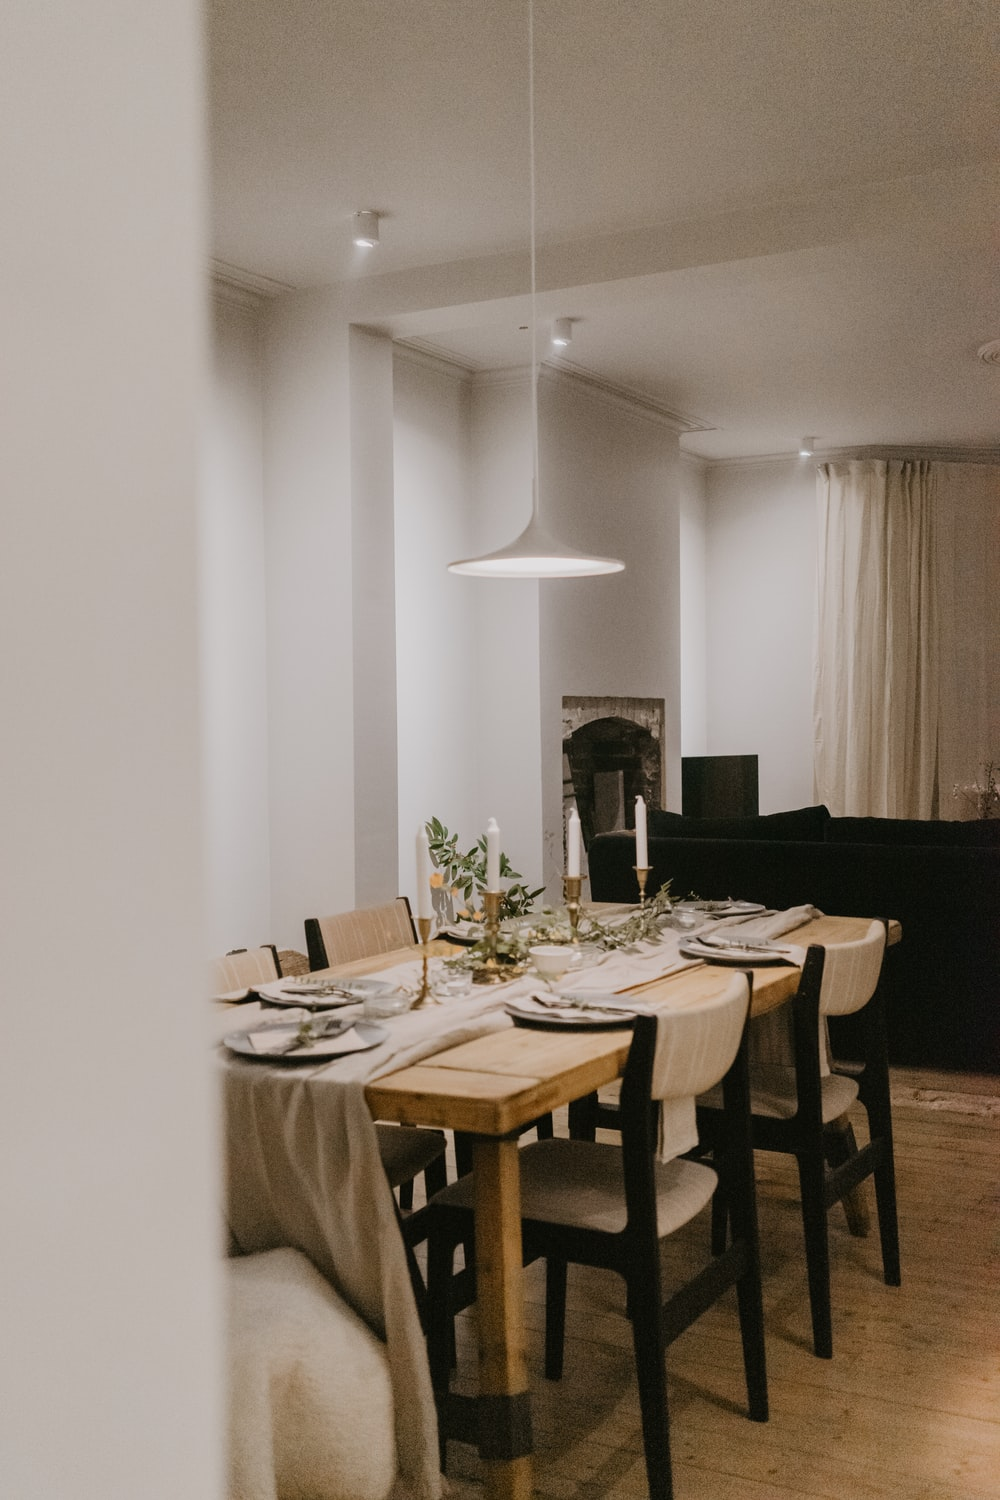 dining table with chairs and table